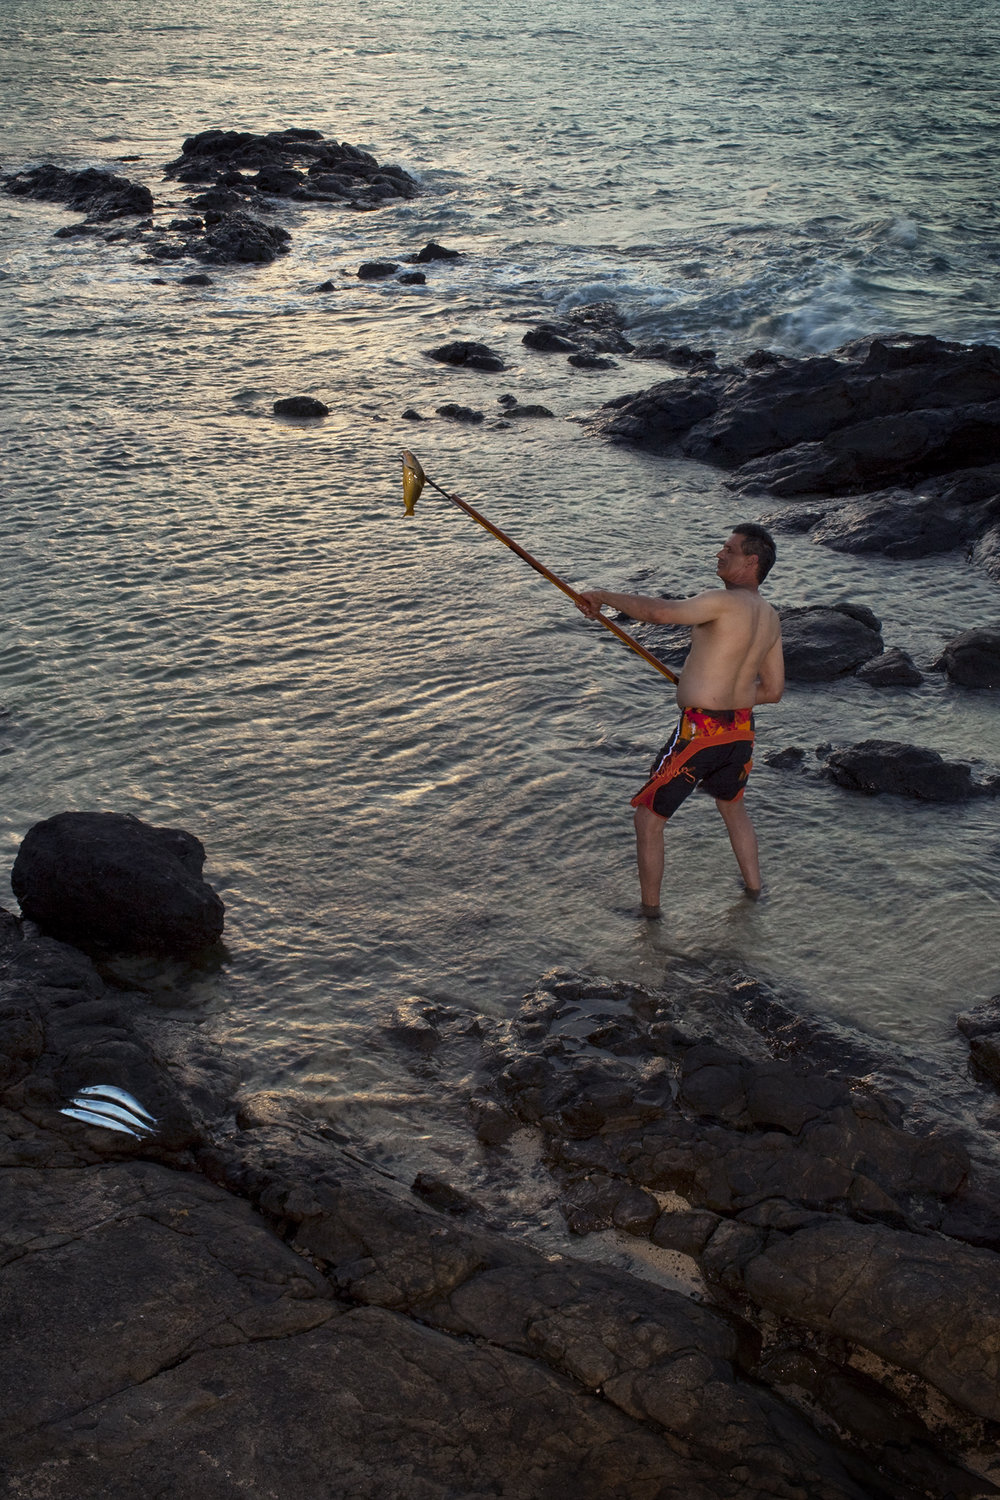 Cousin Rob as a Spear Fisherman